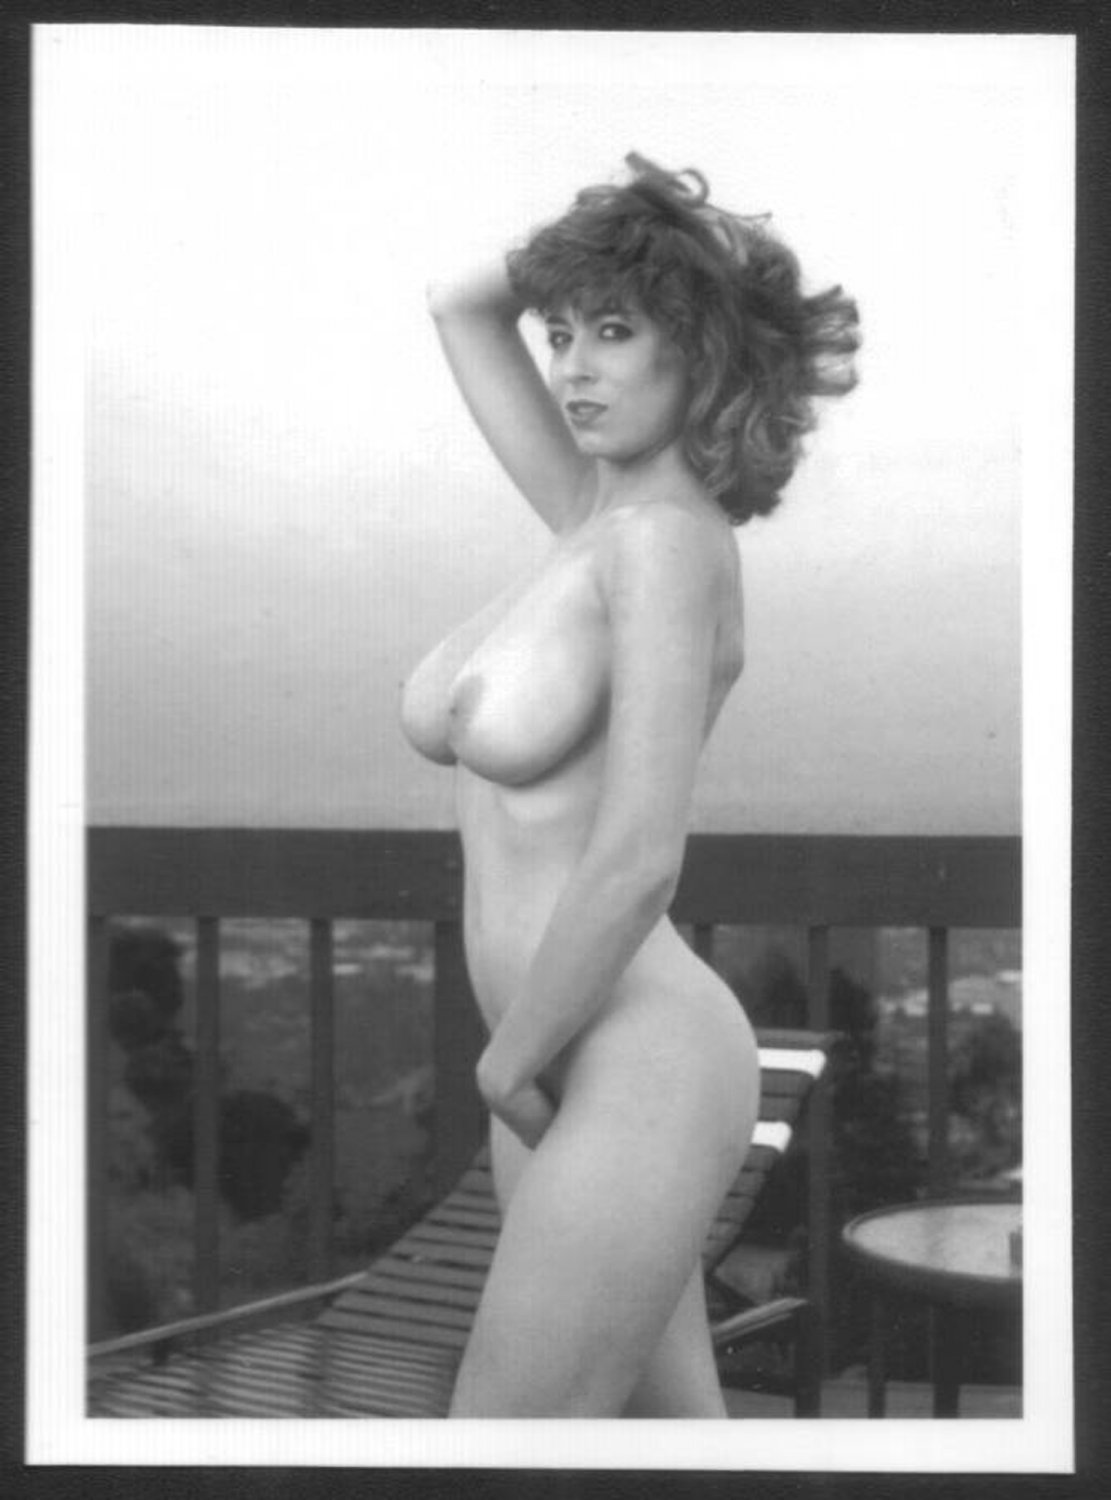 CHRISTY CANYON TOTALLY NUDE HEAVY HANGING BREASTS HAIRY PUSSY 5X7 REPRINT #61